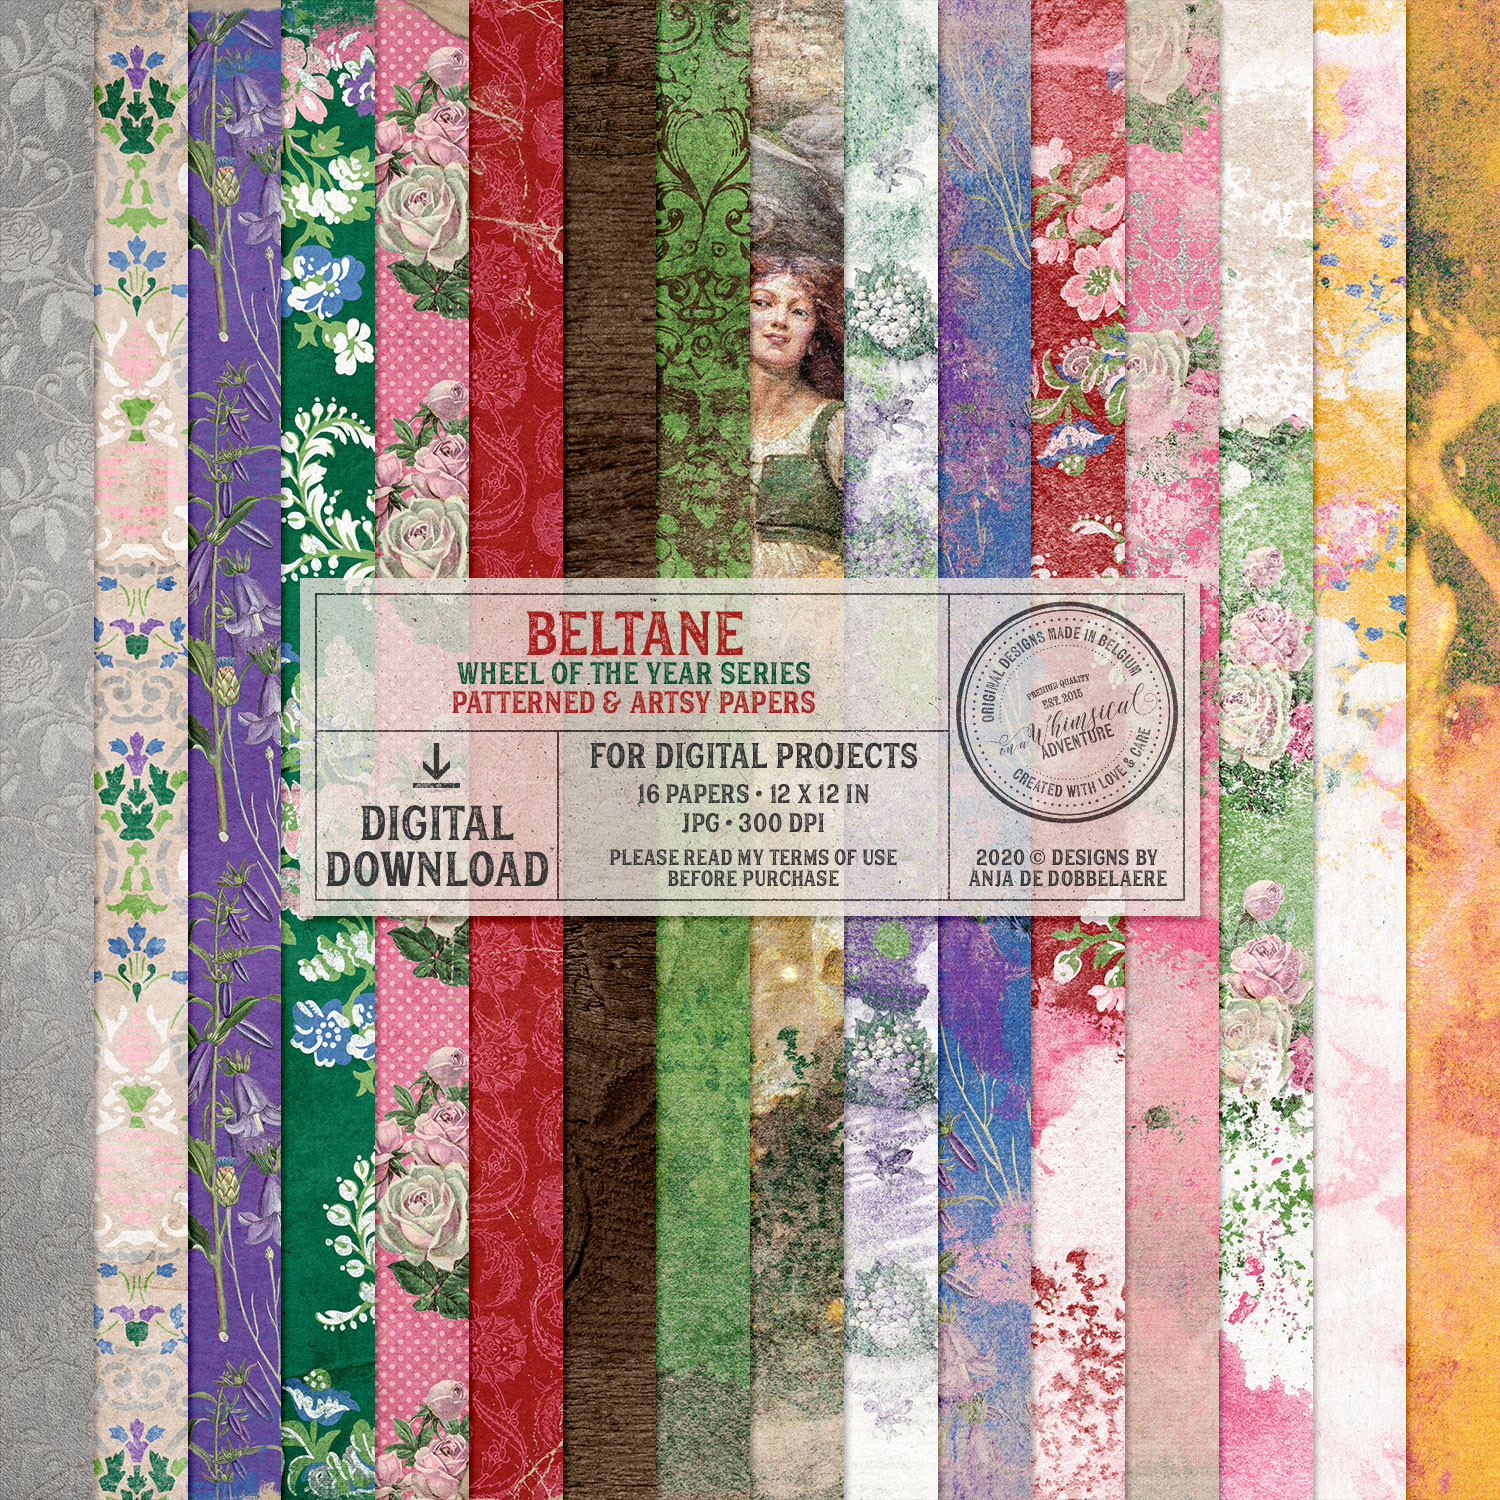 Wheel Of The Year Beltane Patterned And Artsy Papers by On A Whimsical Adventure